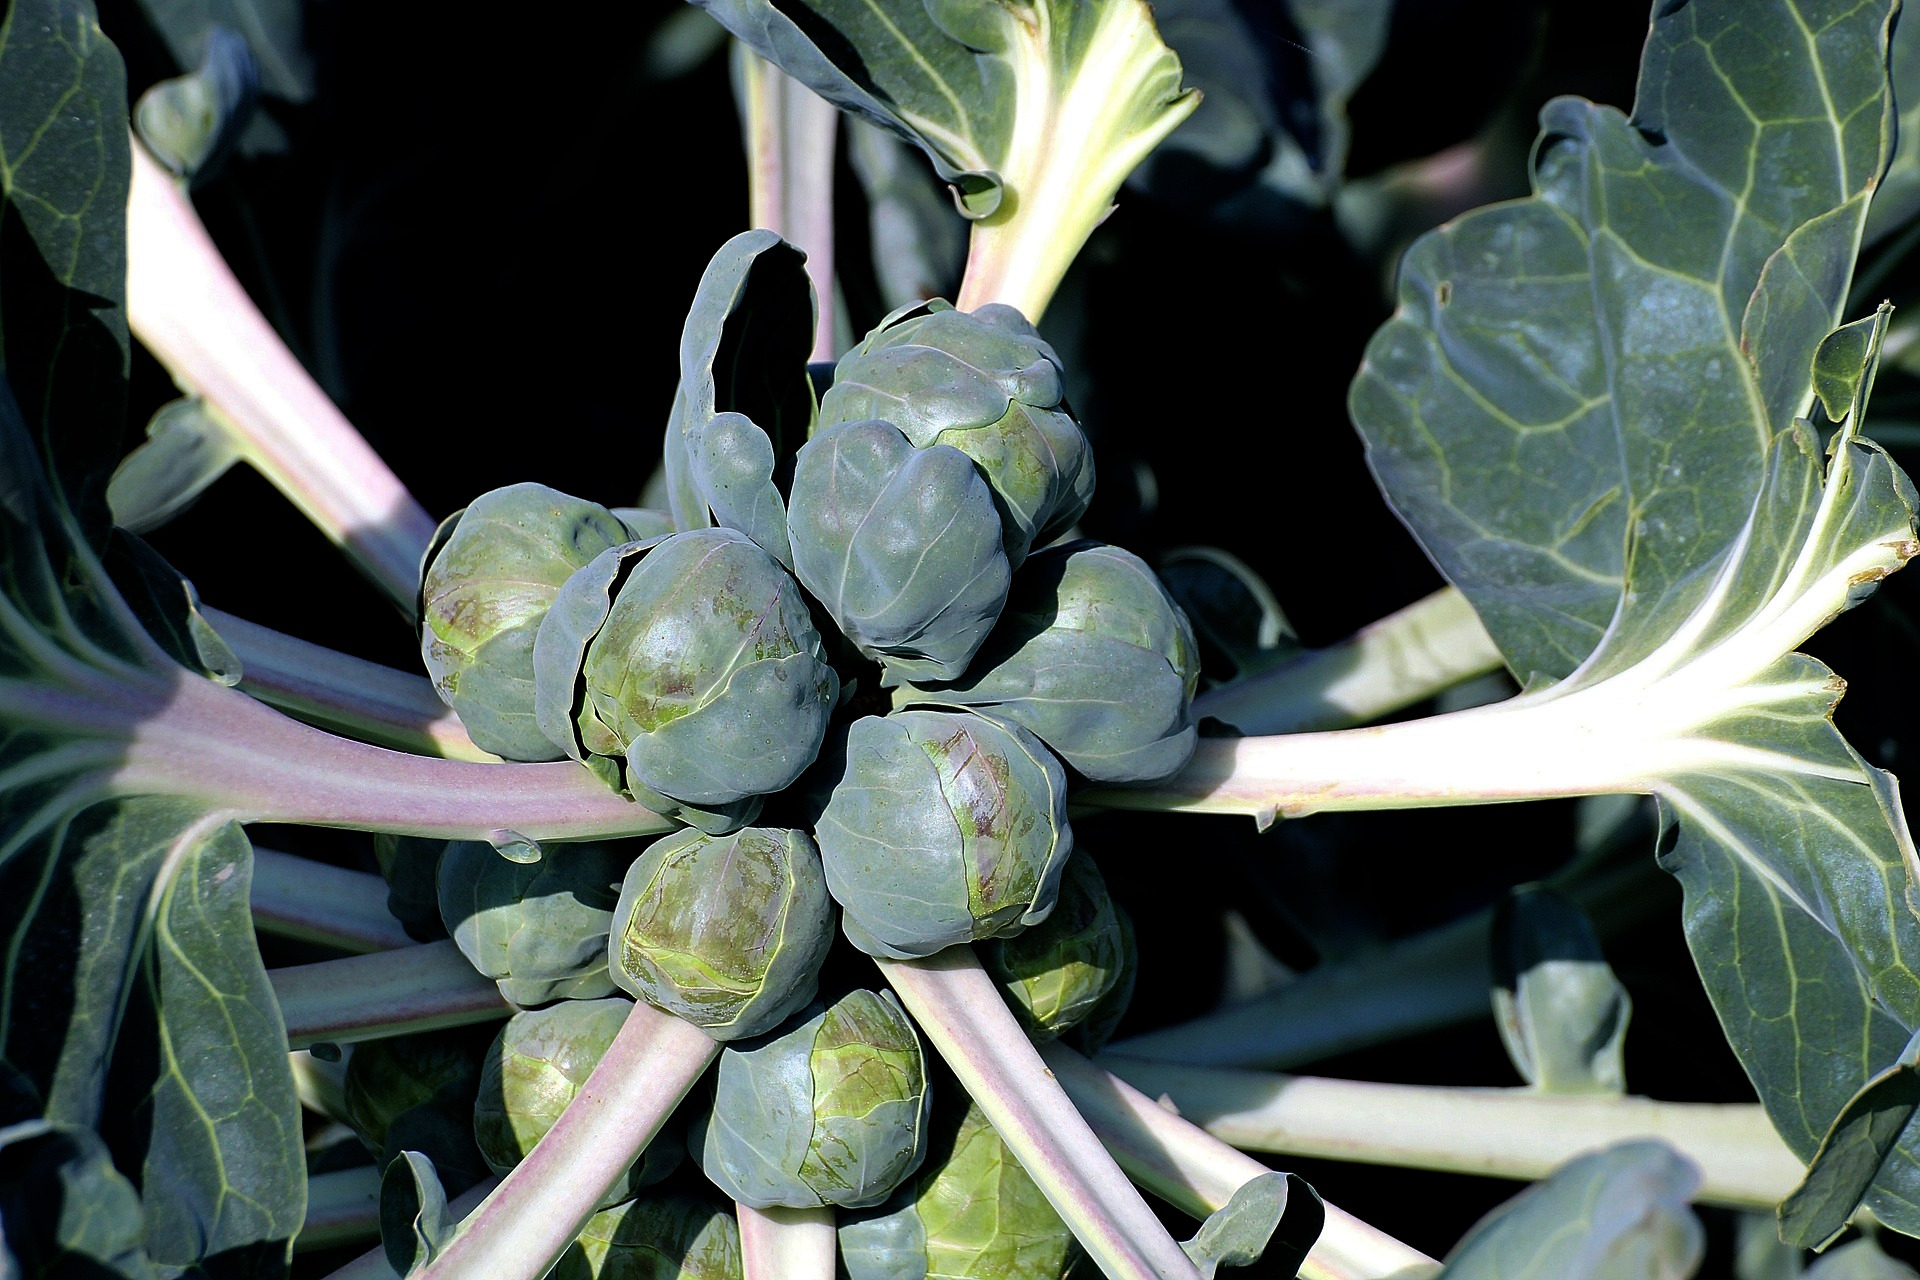 Growing Brussel Sprouts in Containers